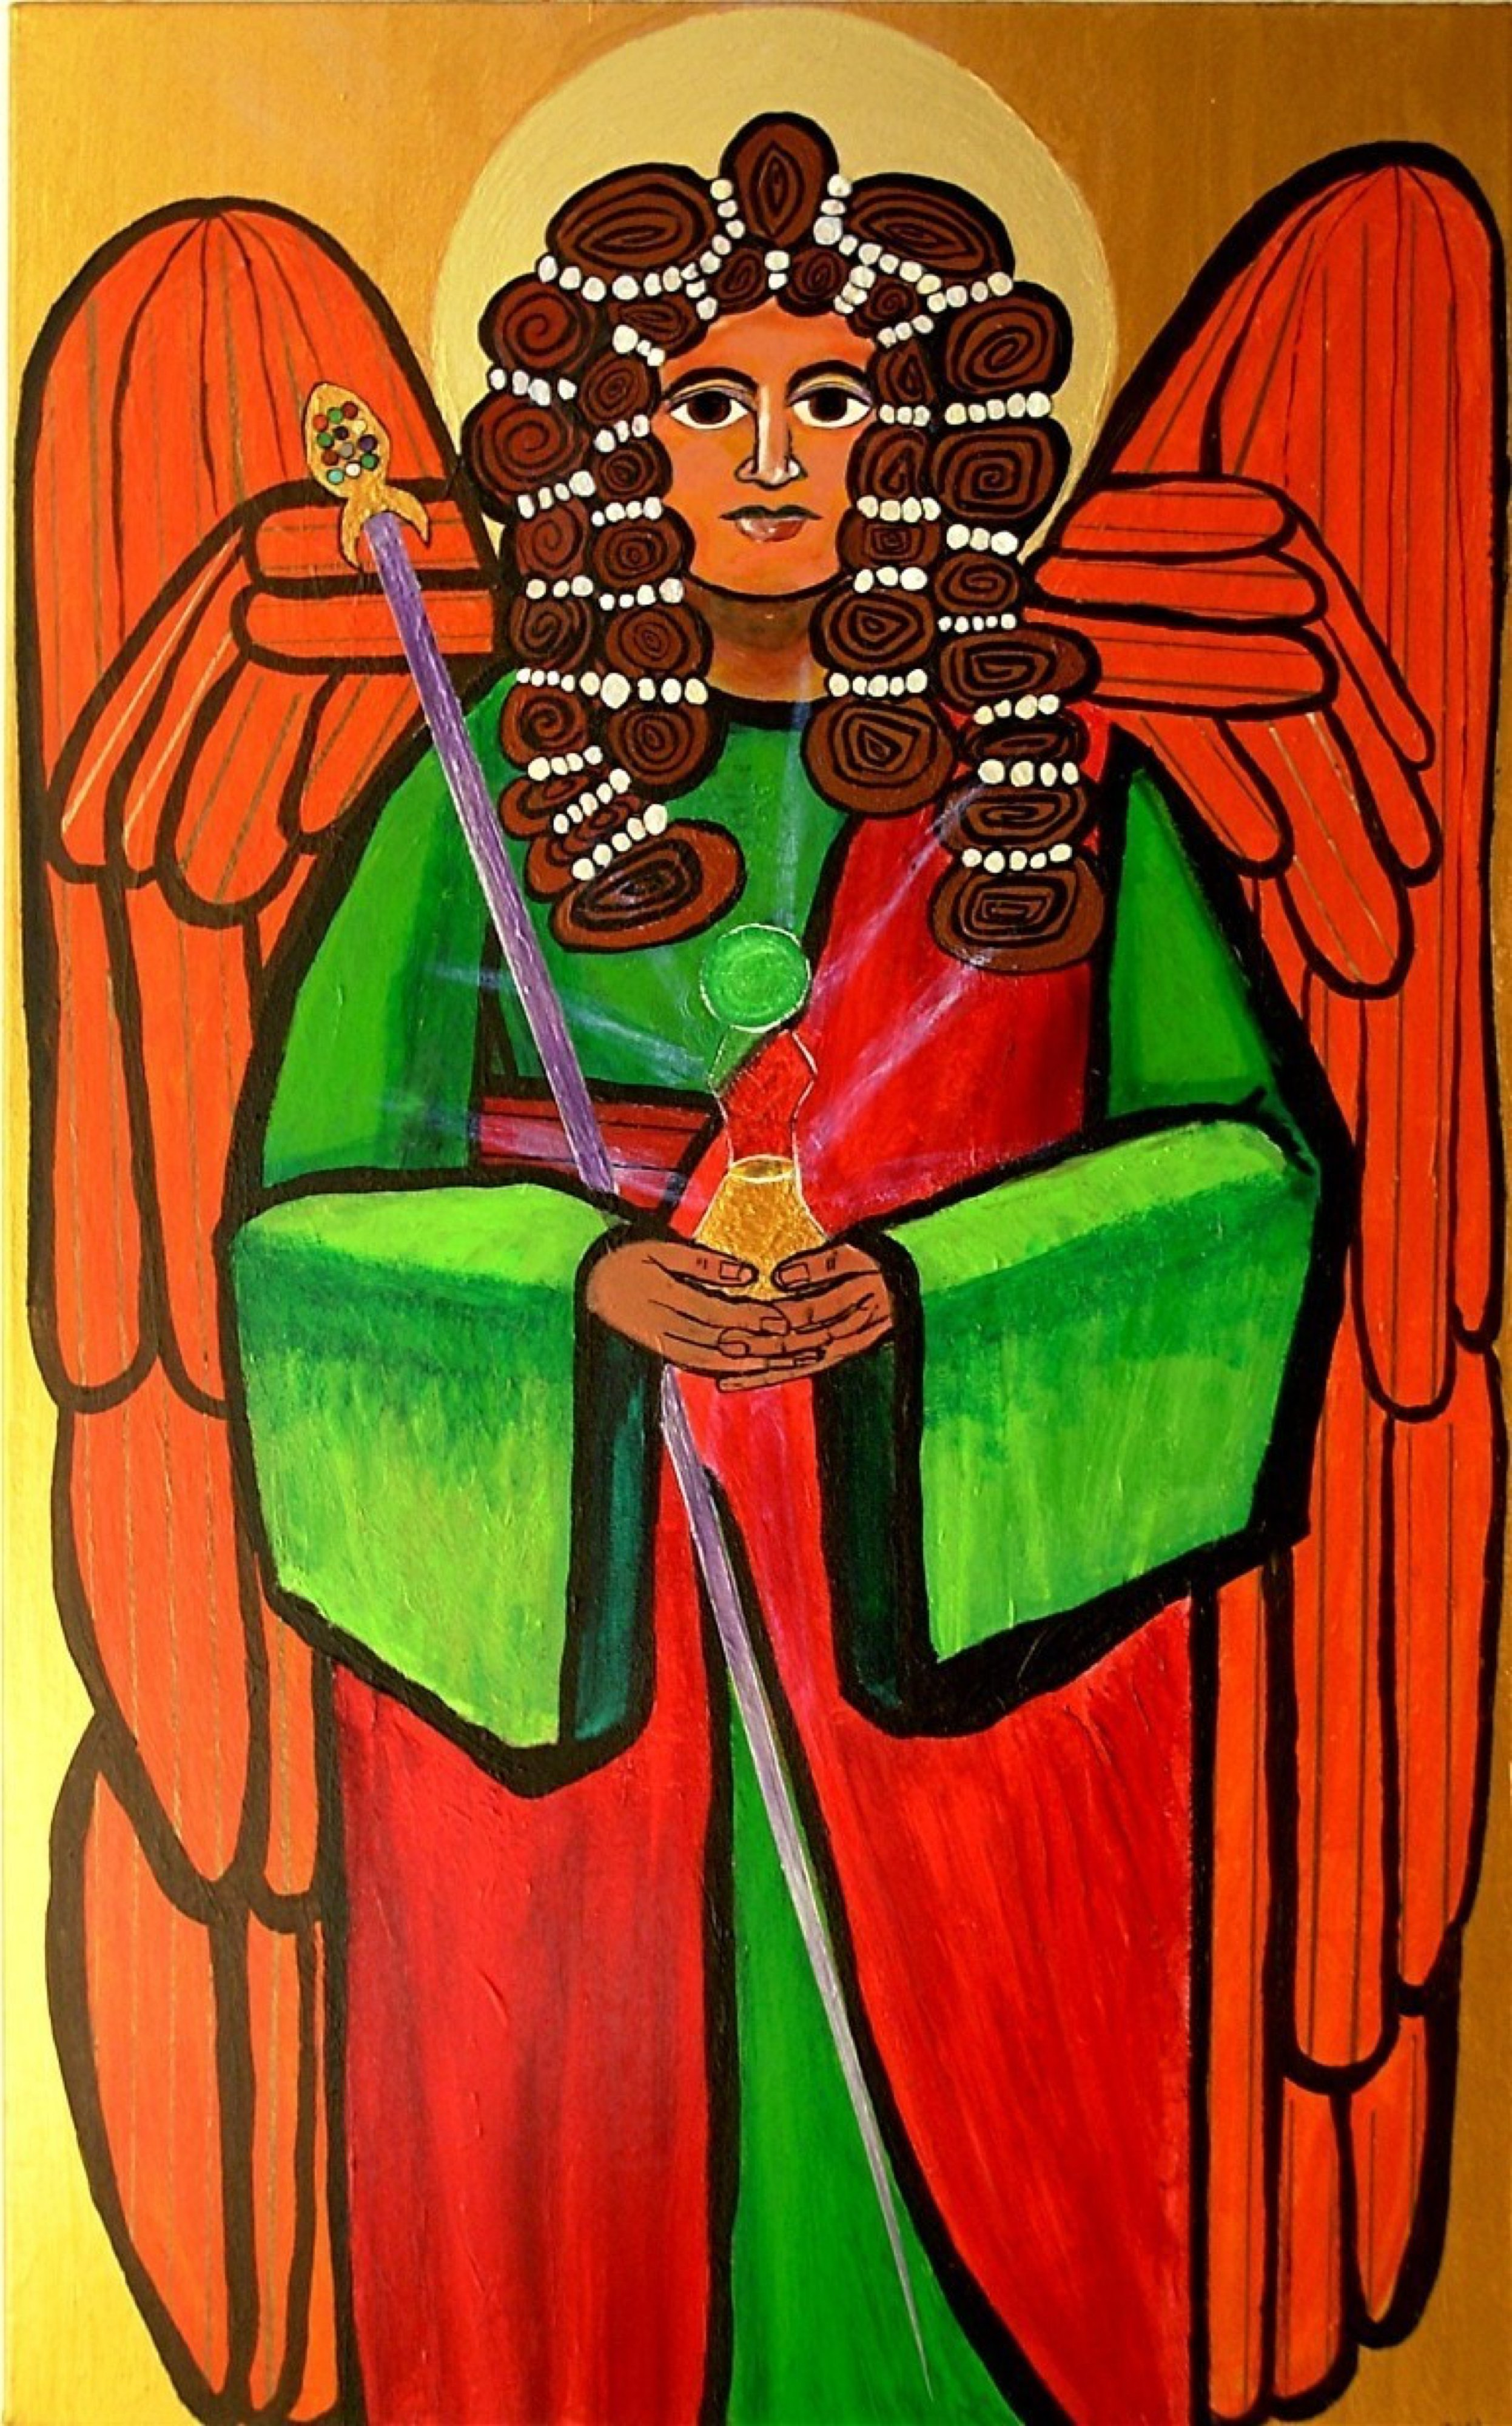 Jerry  Di Falco: 'The Archangel Raphael with Magic Staff', 2007 Acrylic Painting, Mystical. This painting has been in my personal collection for twelve years, and I decided to put it on the market in the year 2018. I painted this icon of the Archangel Raphael as a personal prayer to the universe, and I would now like it to hang in a public ...